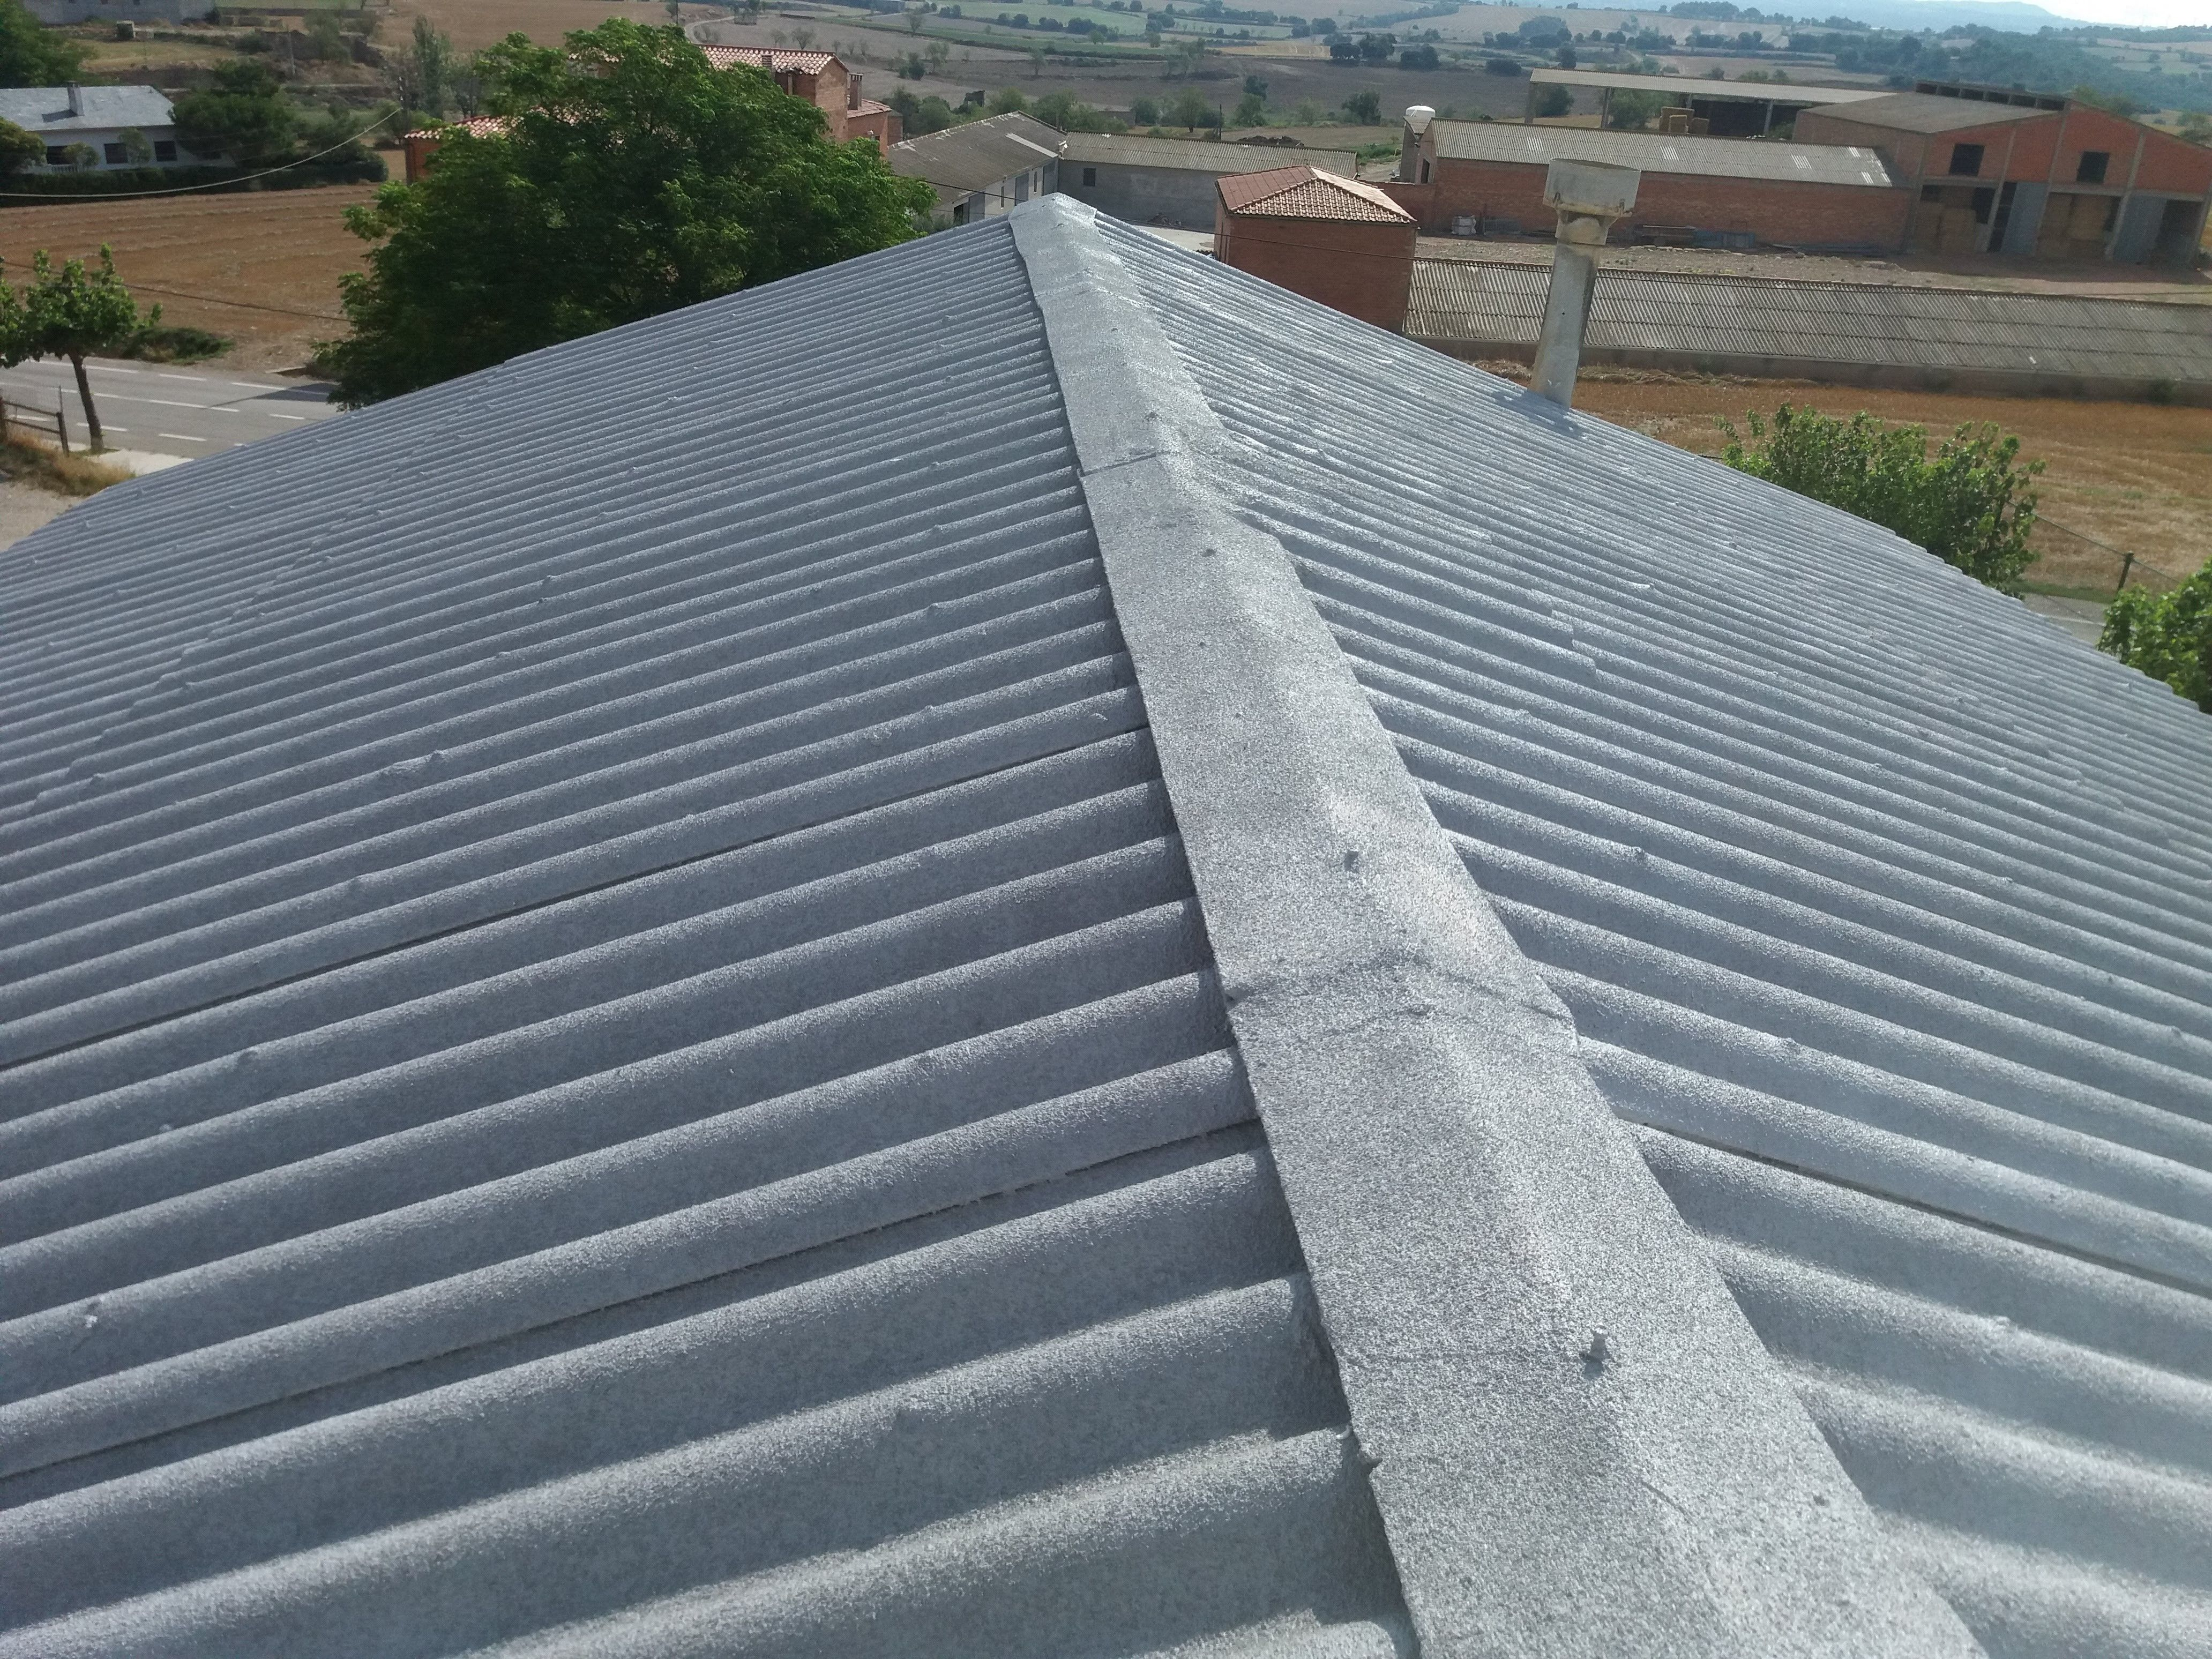 Result of waterproofing of roofs